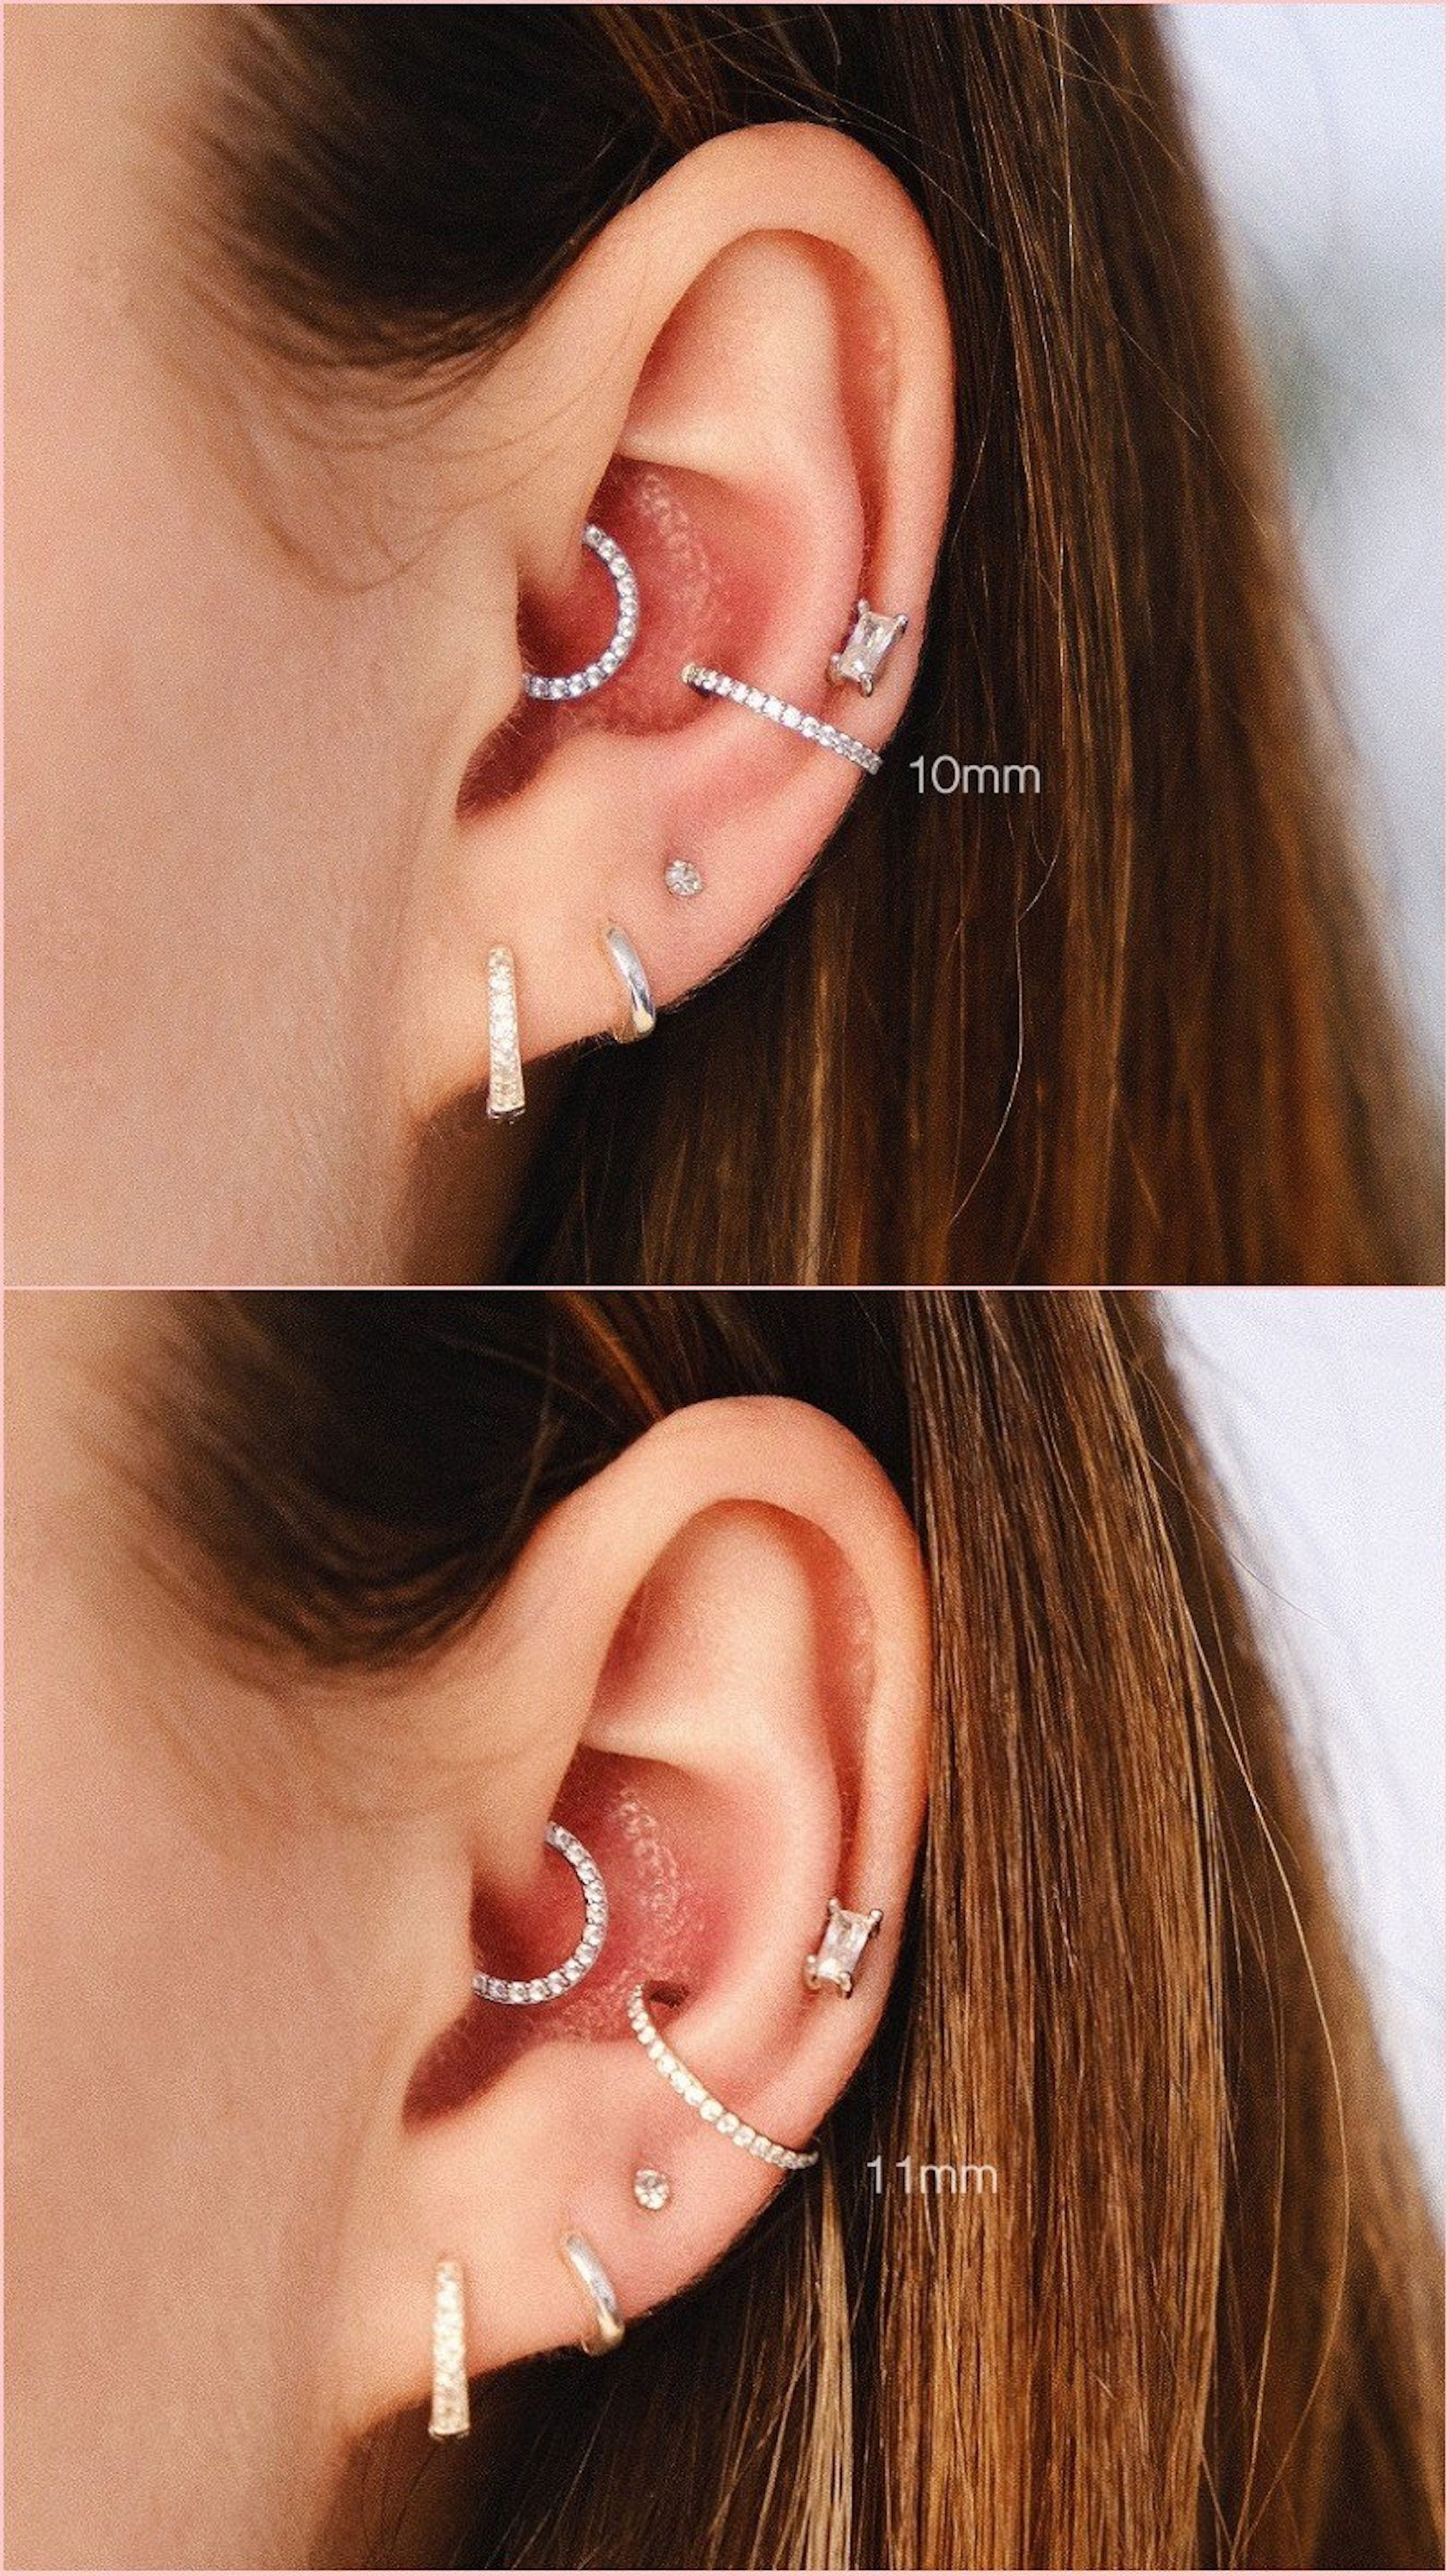 Conch piercing size guide conch hoop size conch ring size conch diameter